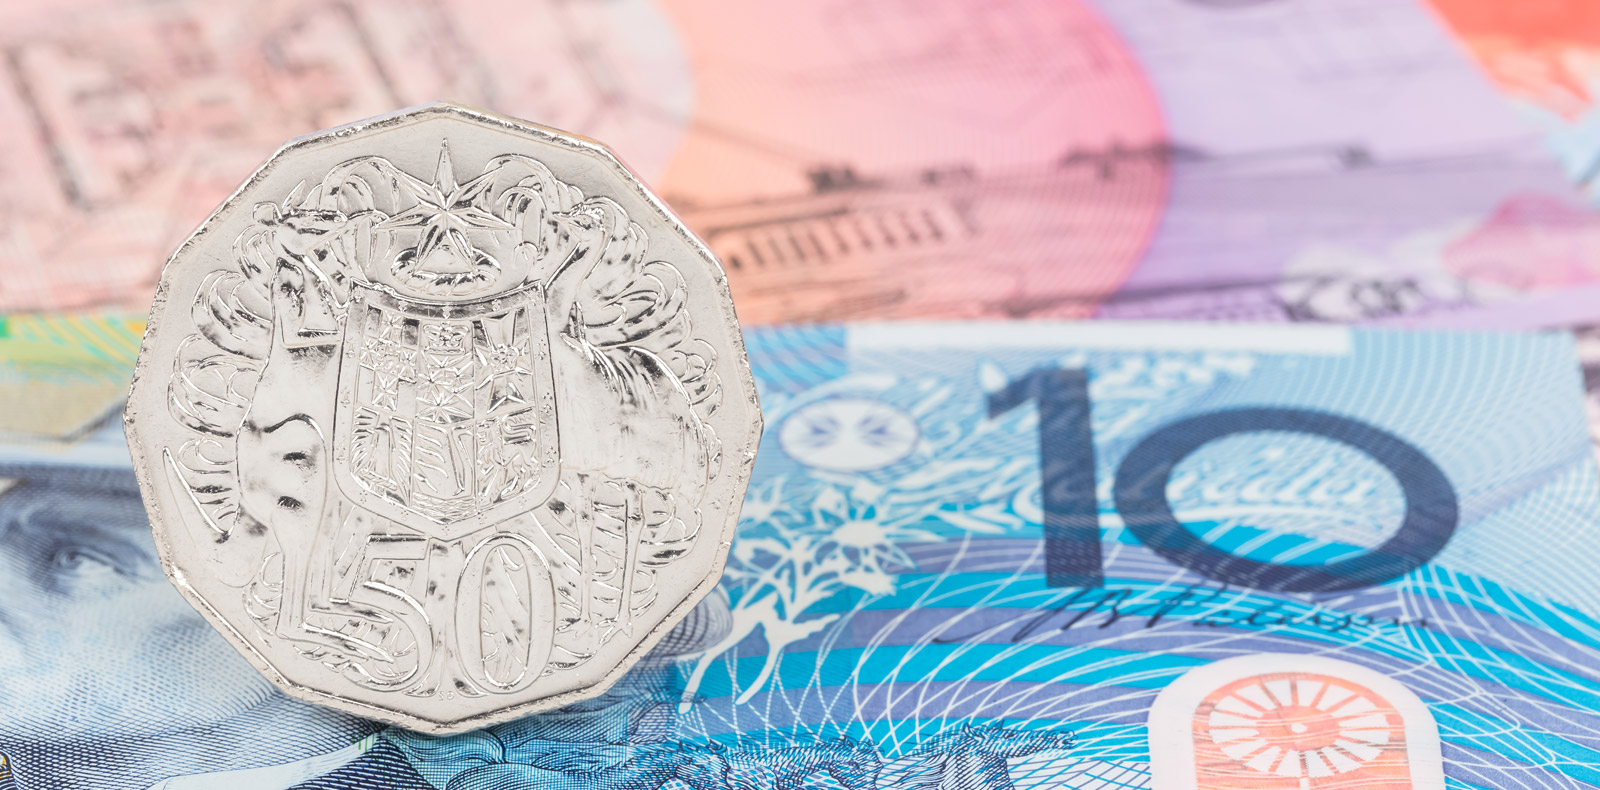 Australian Dollar weakness with global uncertainty